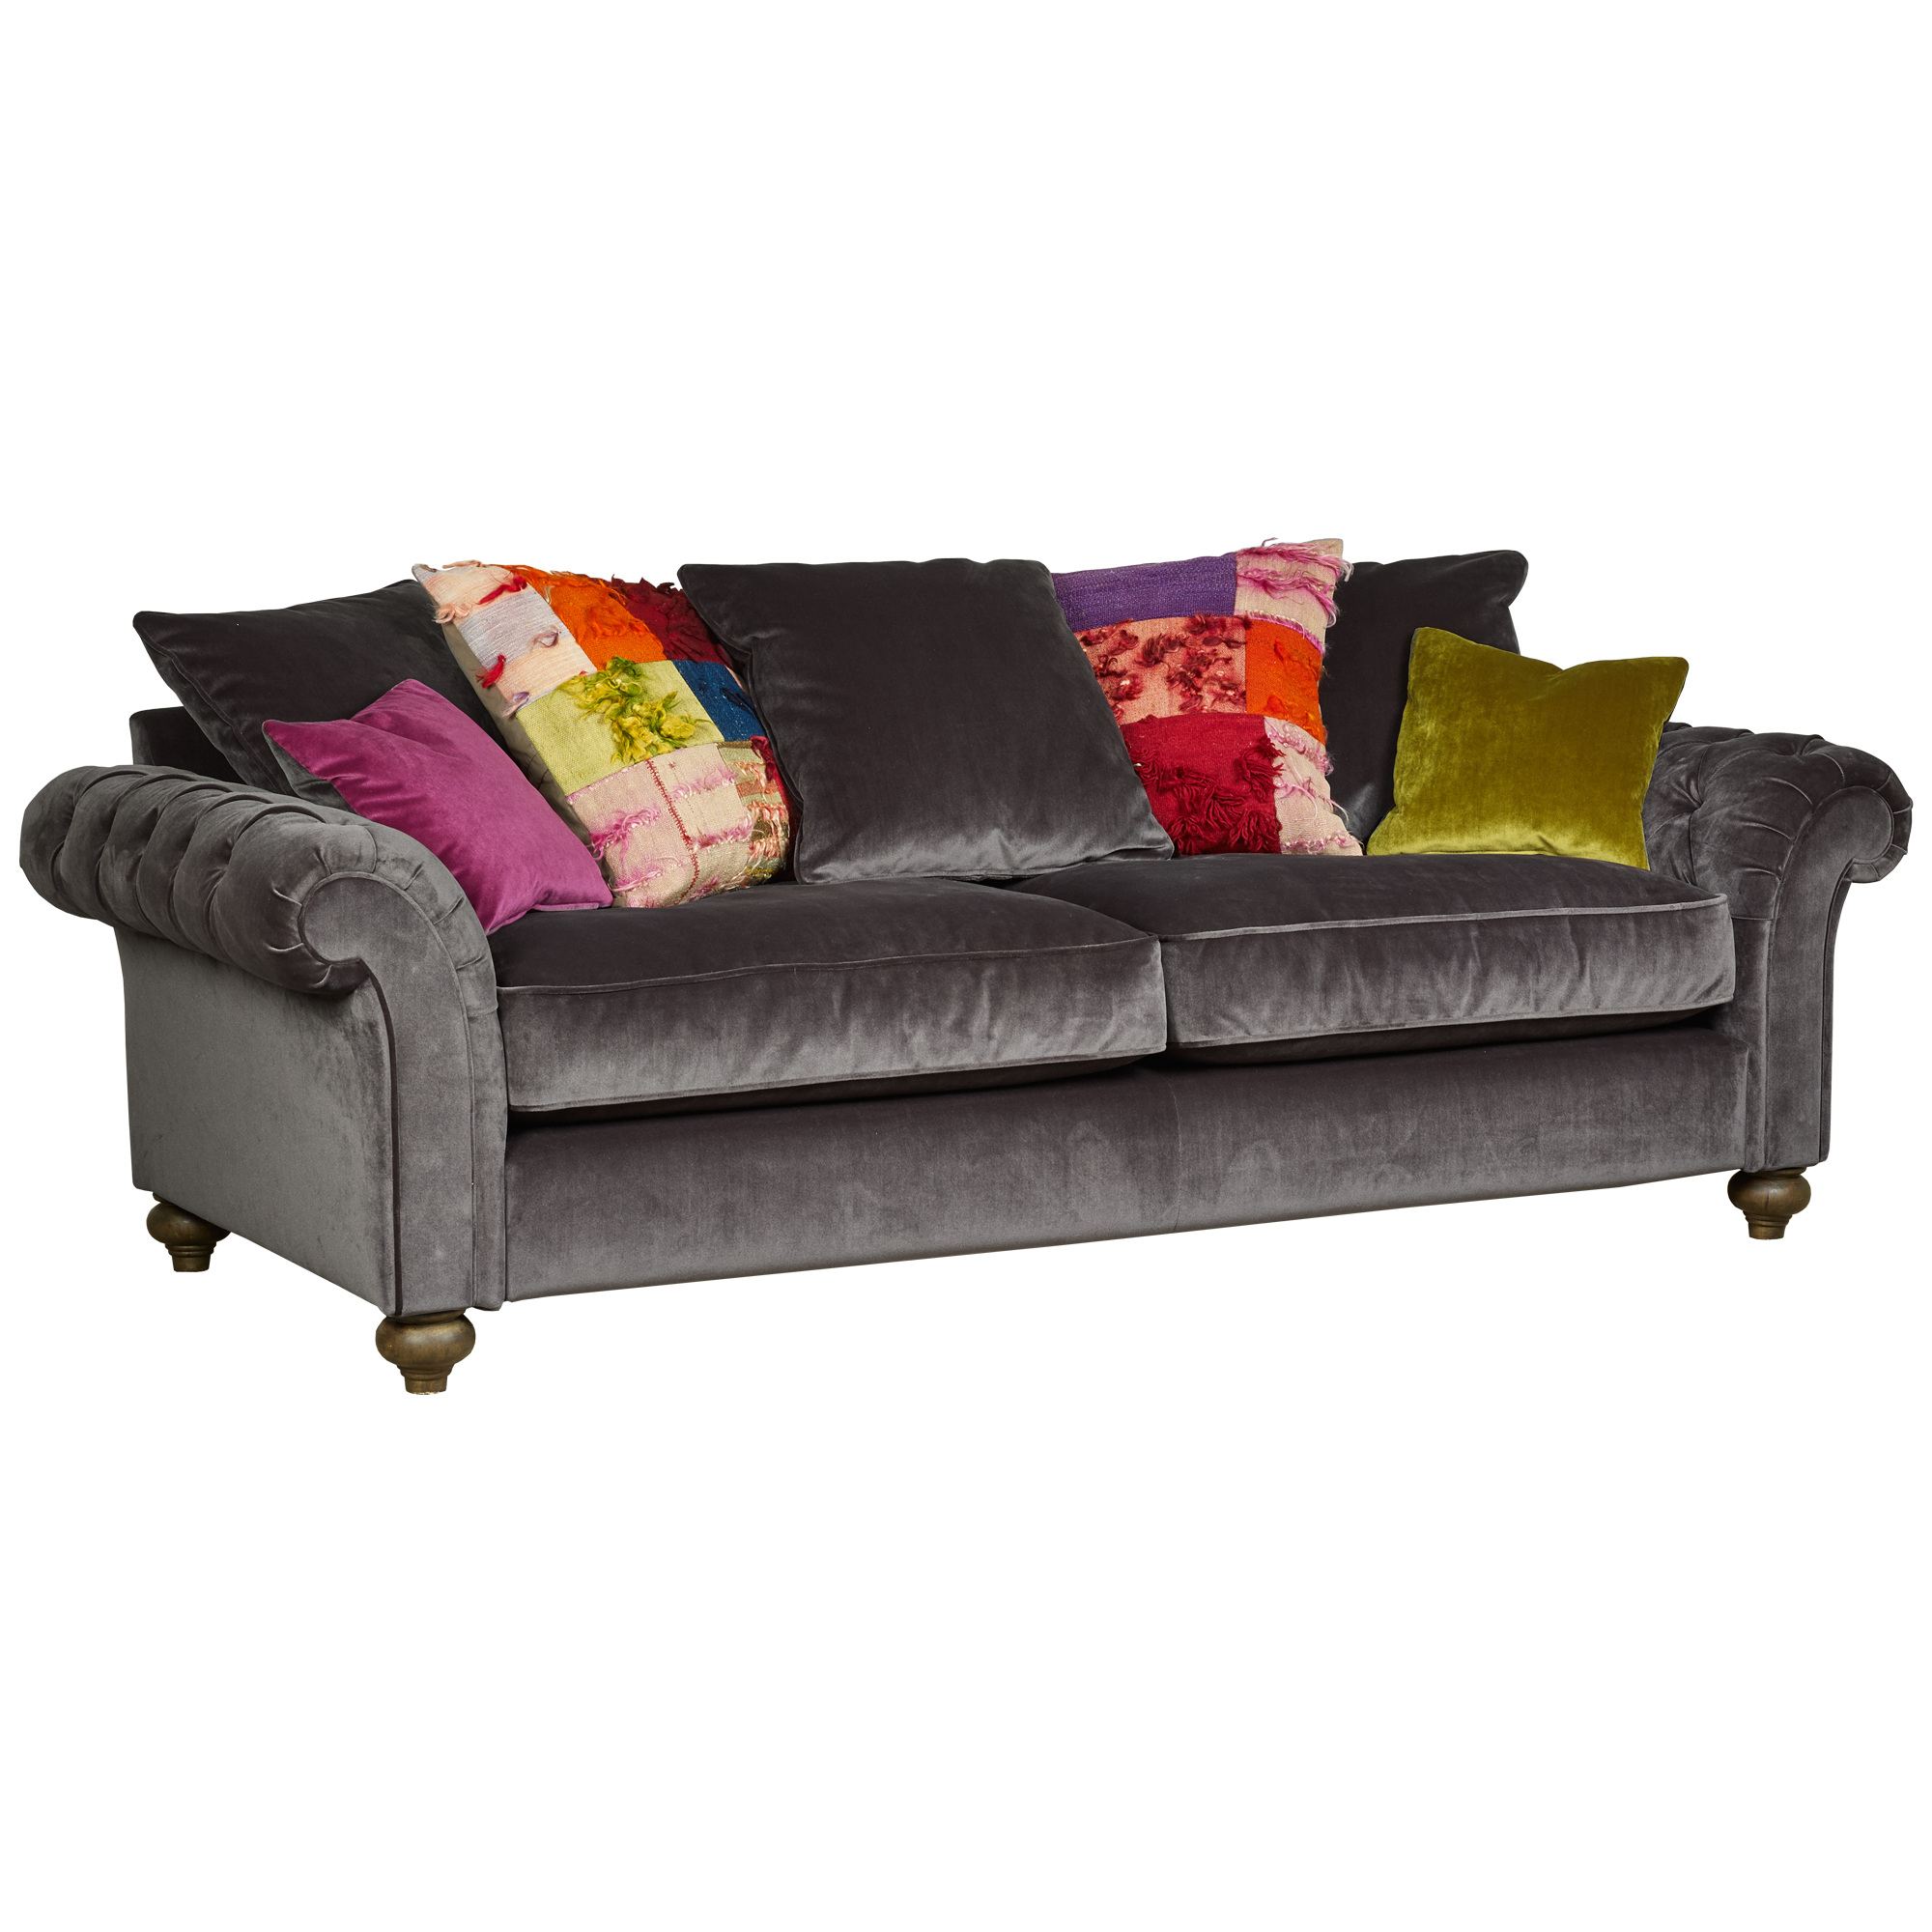 Sofa Wholesalers Uk Carnaby Medium Sofa Webster Contracts Contract Furniture